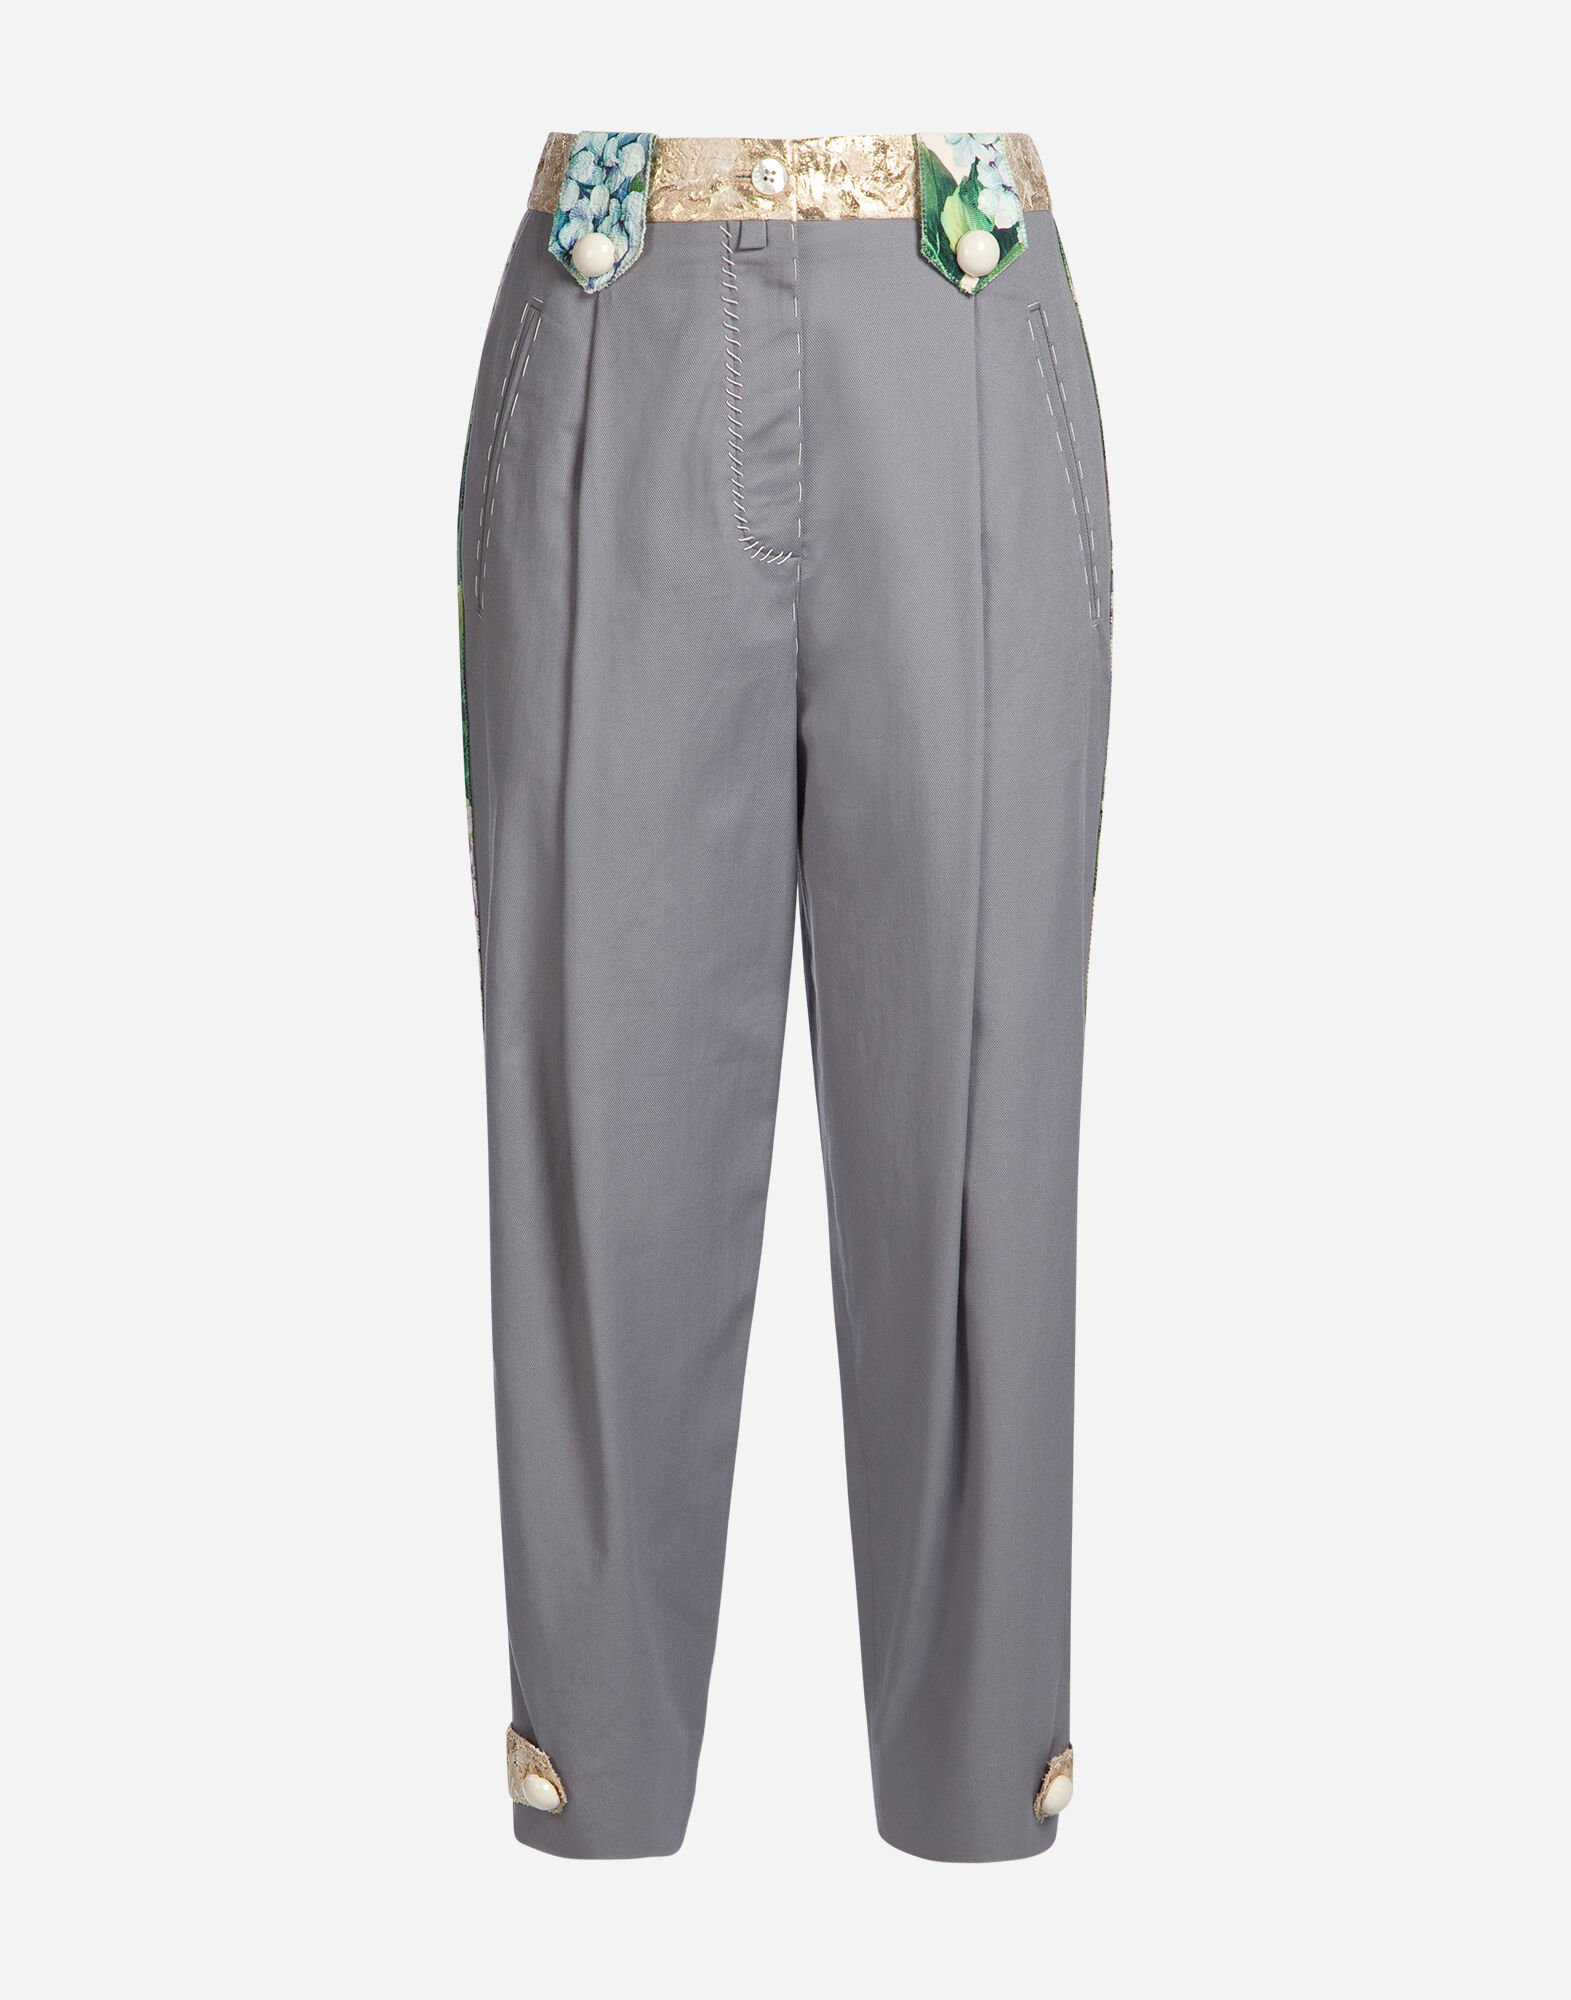 COTTON PANTS WITH BROCADE DETAIL